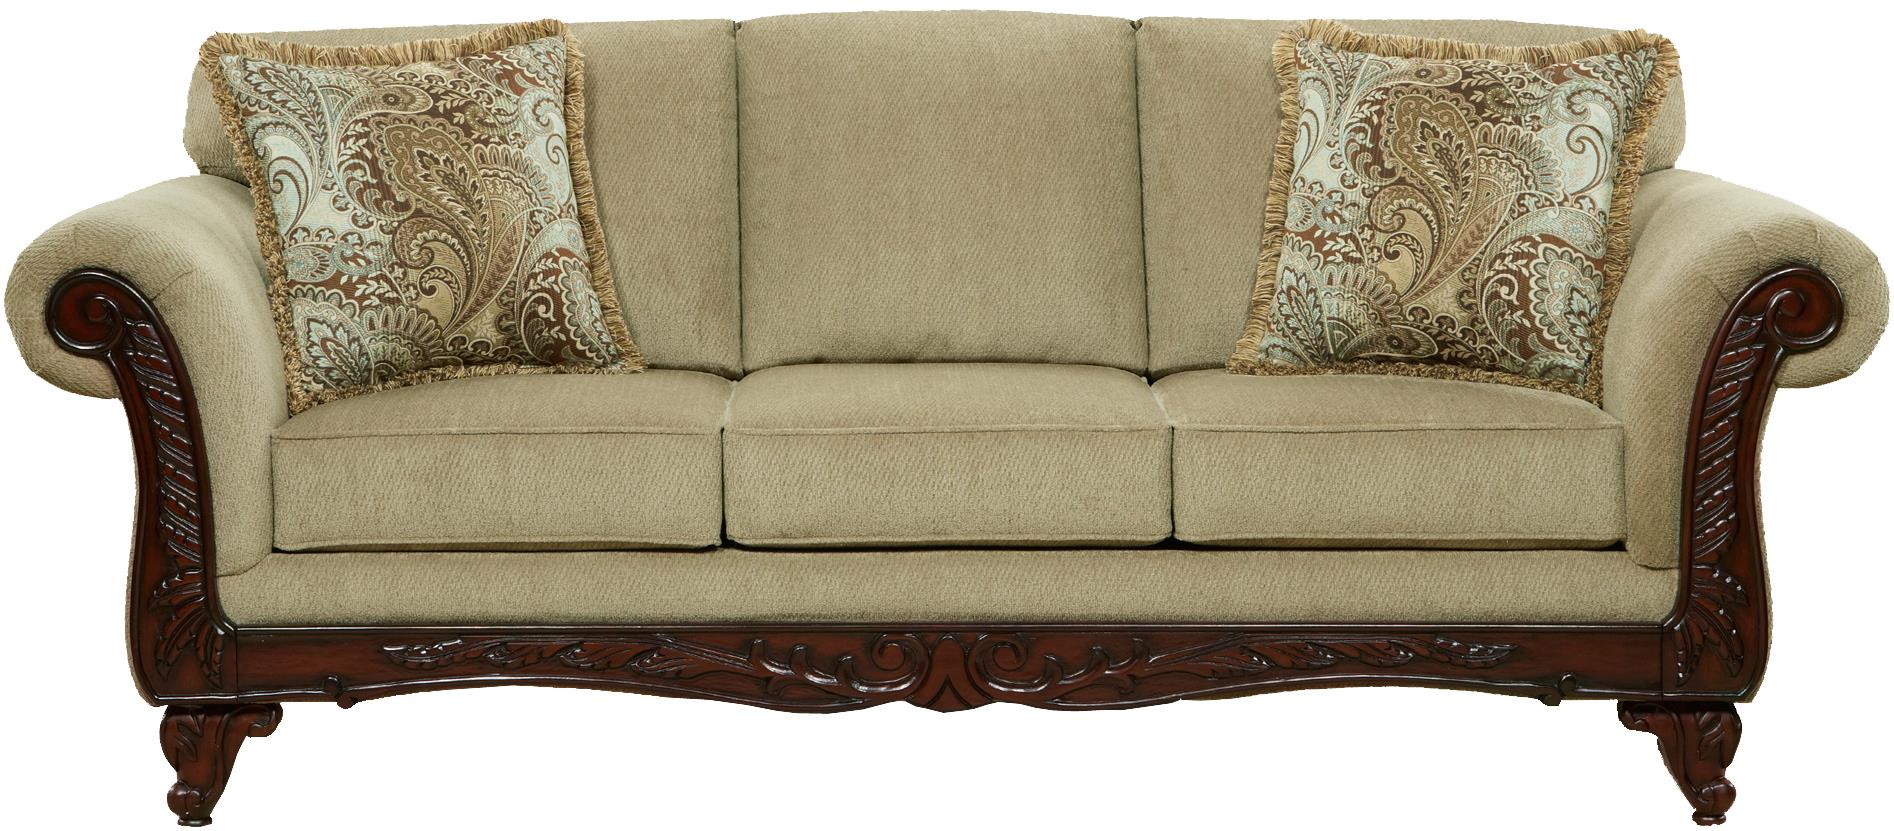 Traditional sofa venice sofa traditional sofas by meridian for Traditional sofas and loveseats